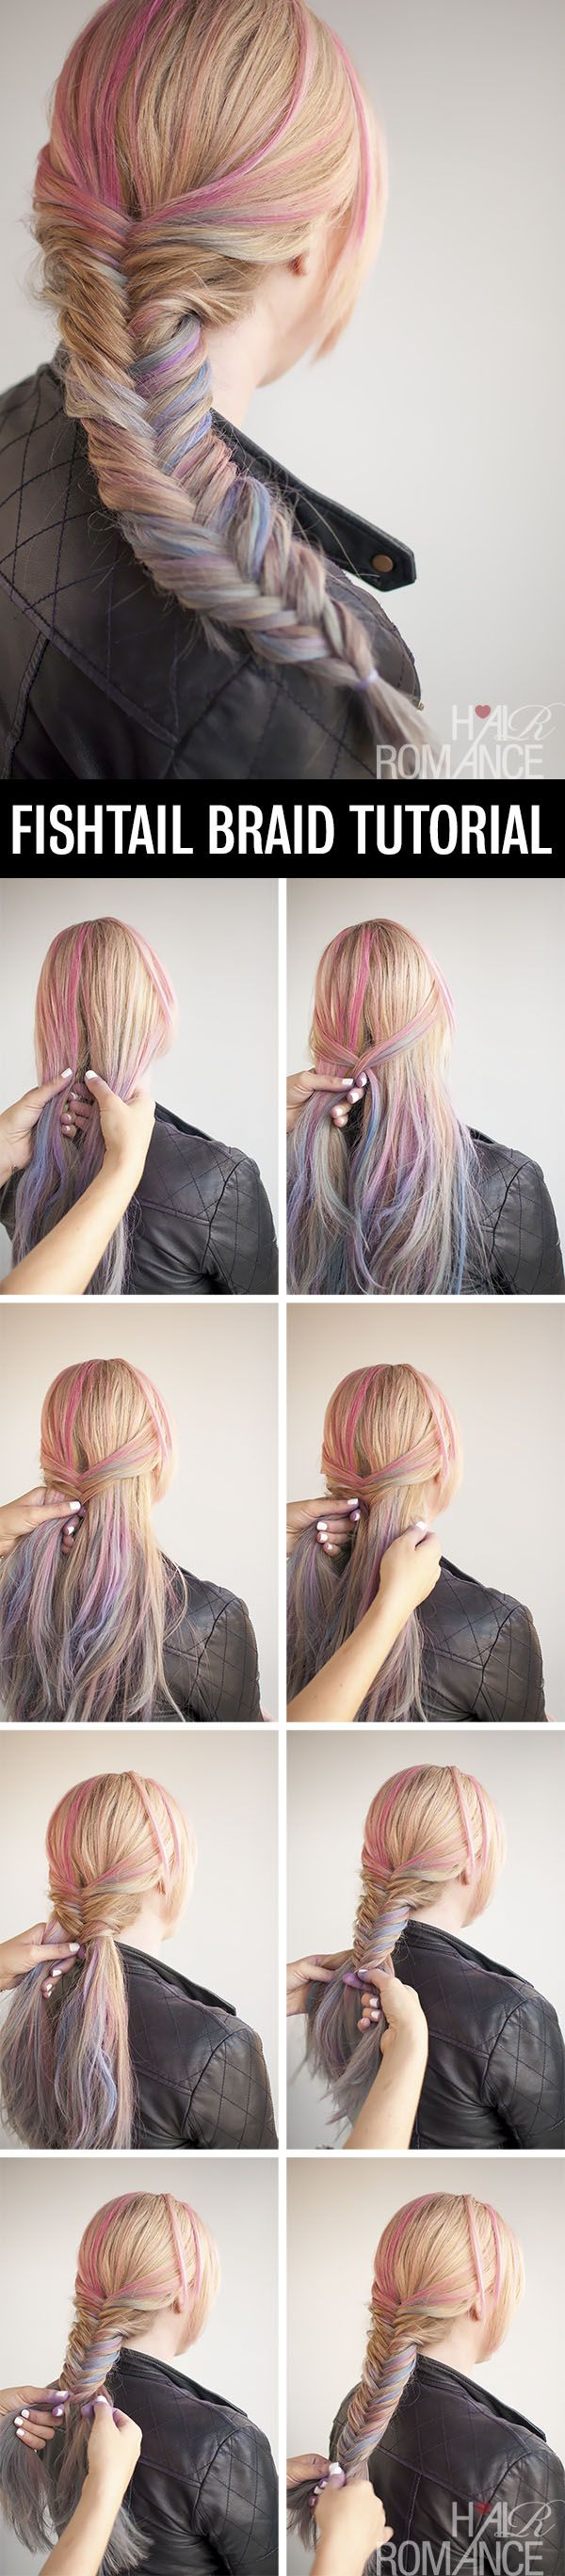 Hairstyle Tutorial: How to do a fishtail braid | Hair Romance. I thought this one was really good for up top.